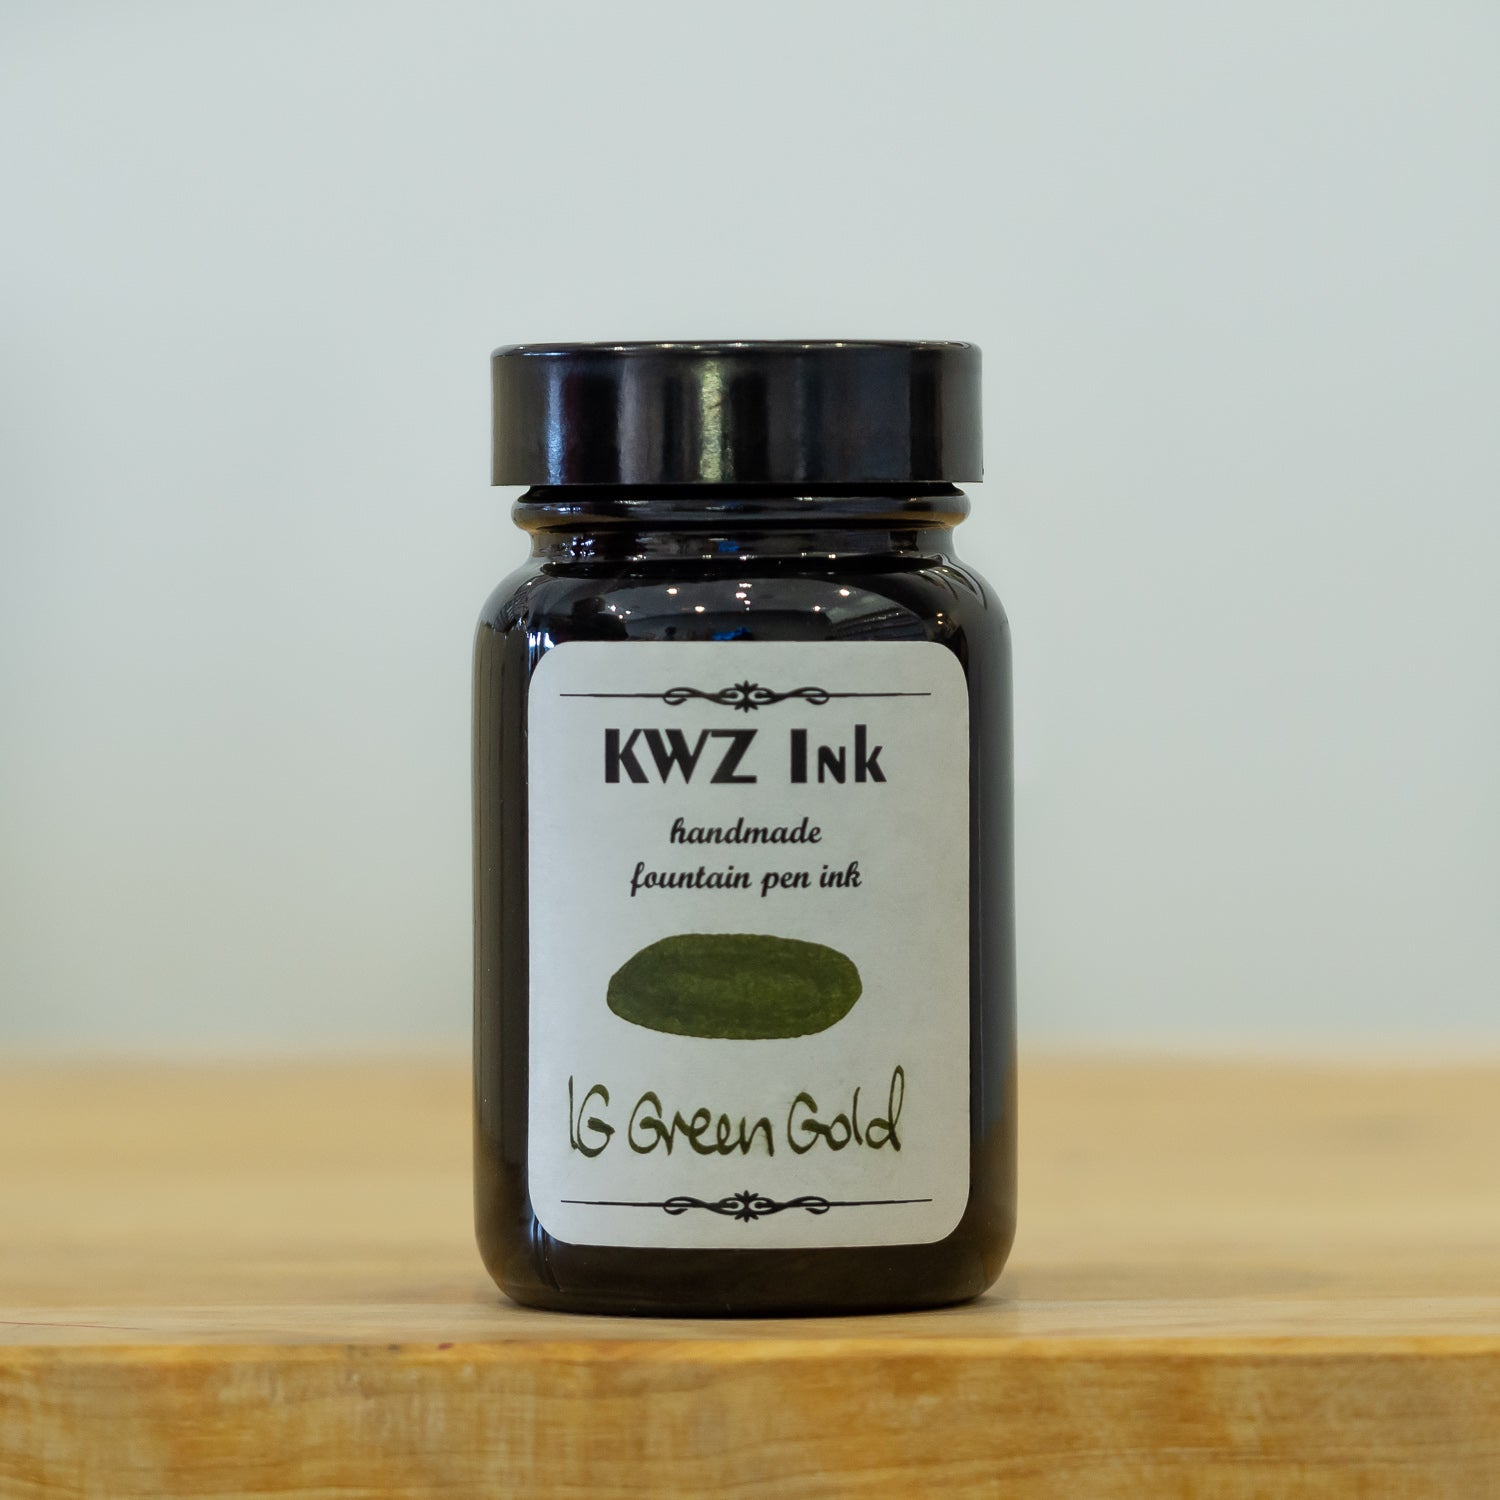 kwz green gold iron gall fountain pen ink